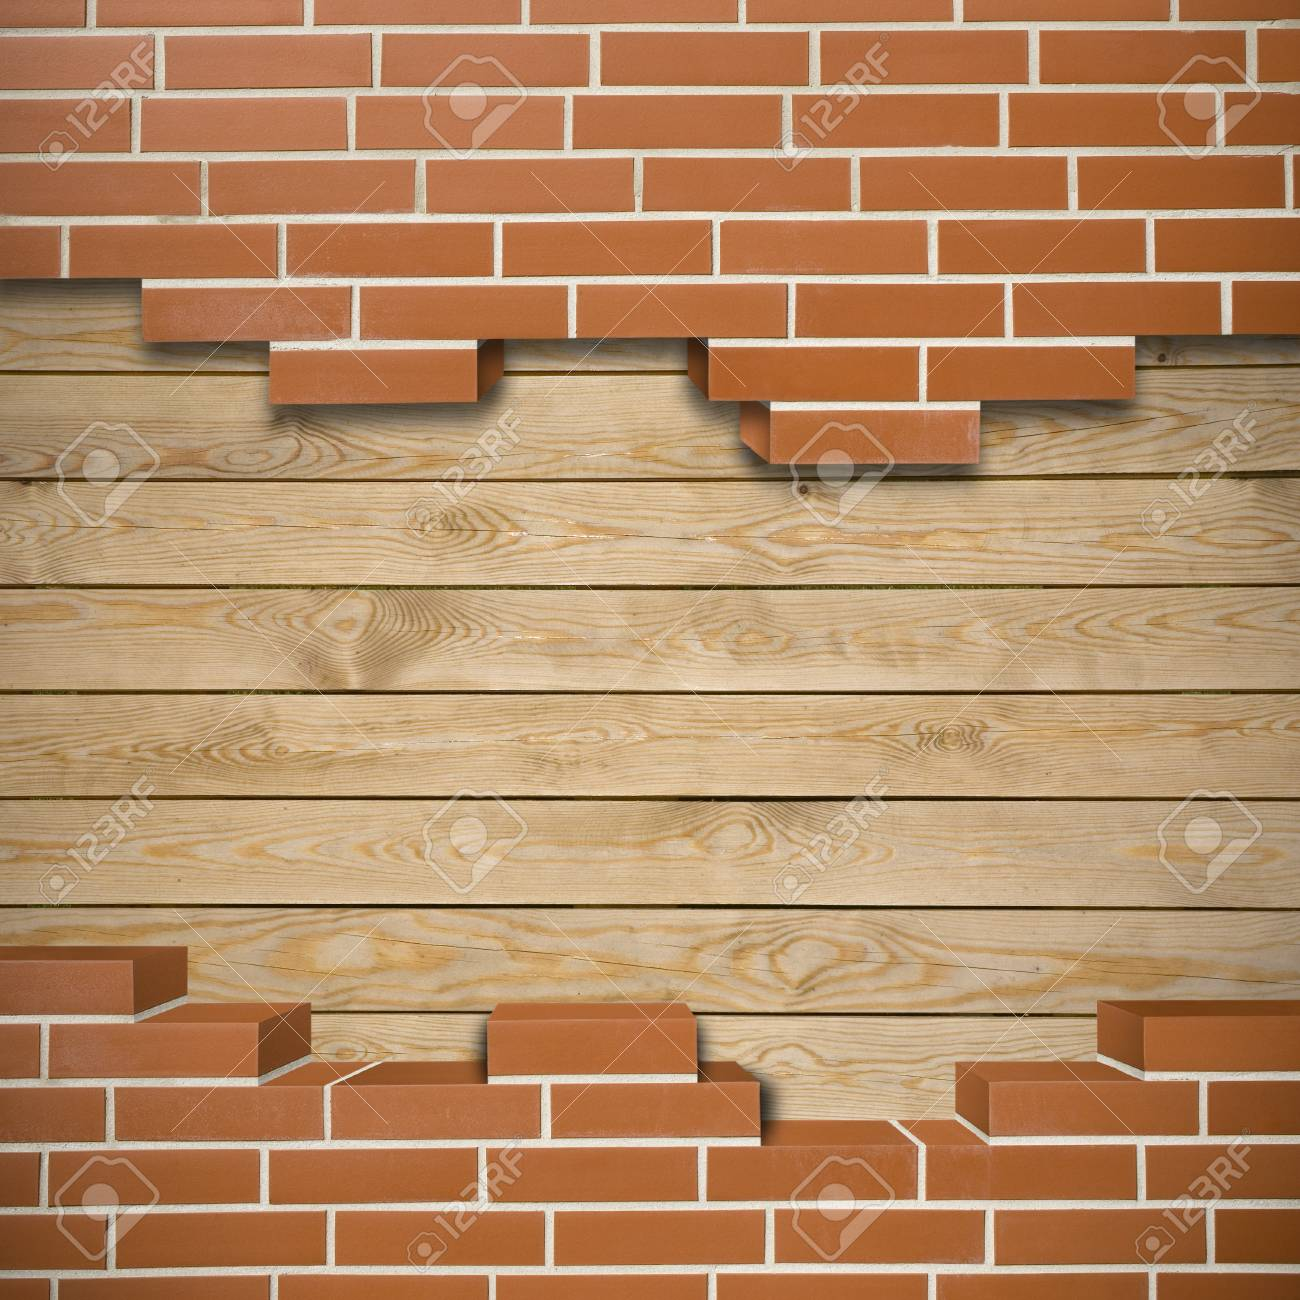 Broken red brickwall with wood boards in the background Stock Photo - 24205612